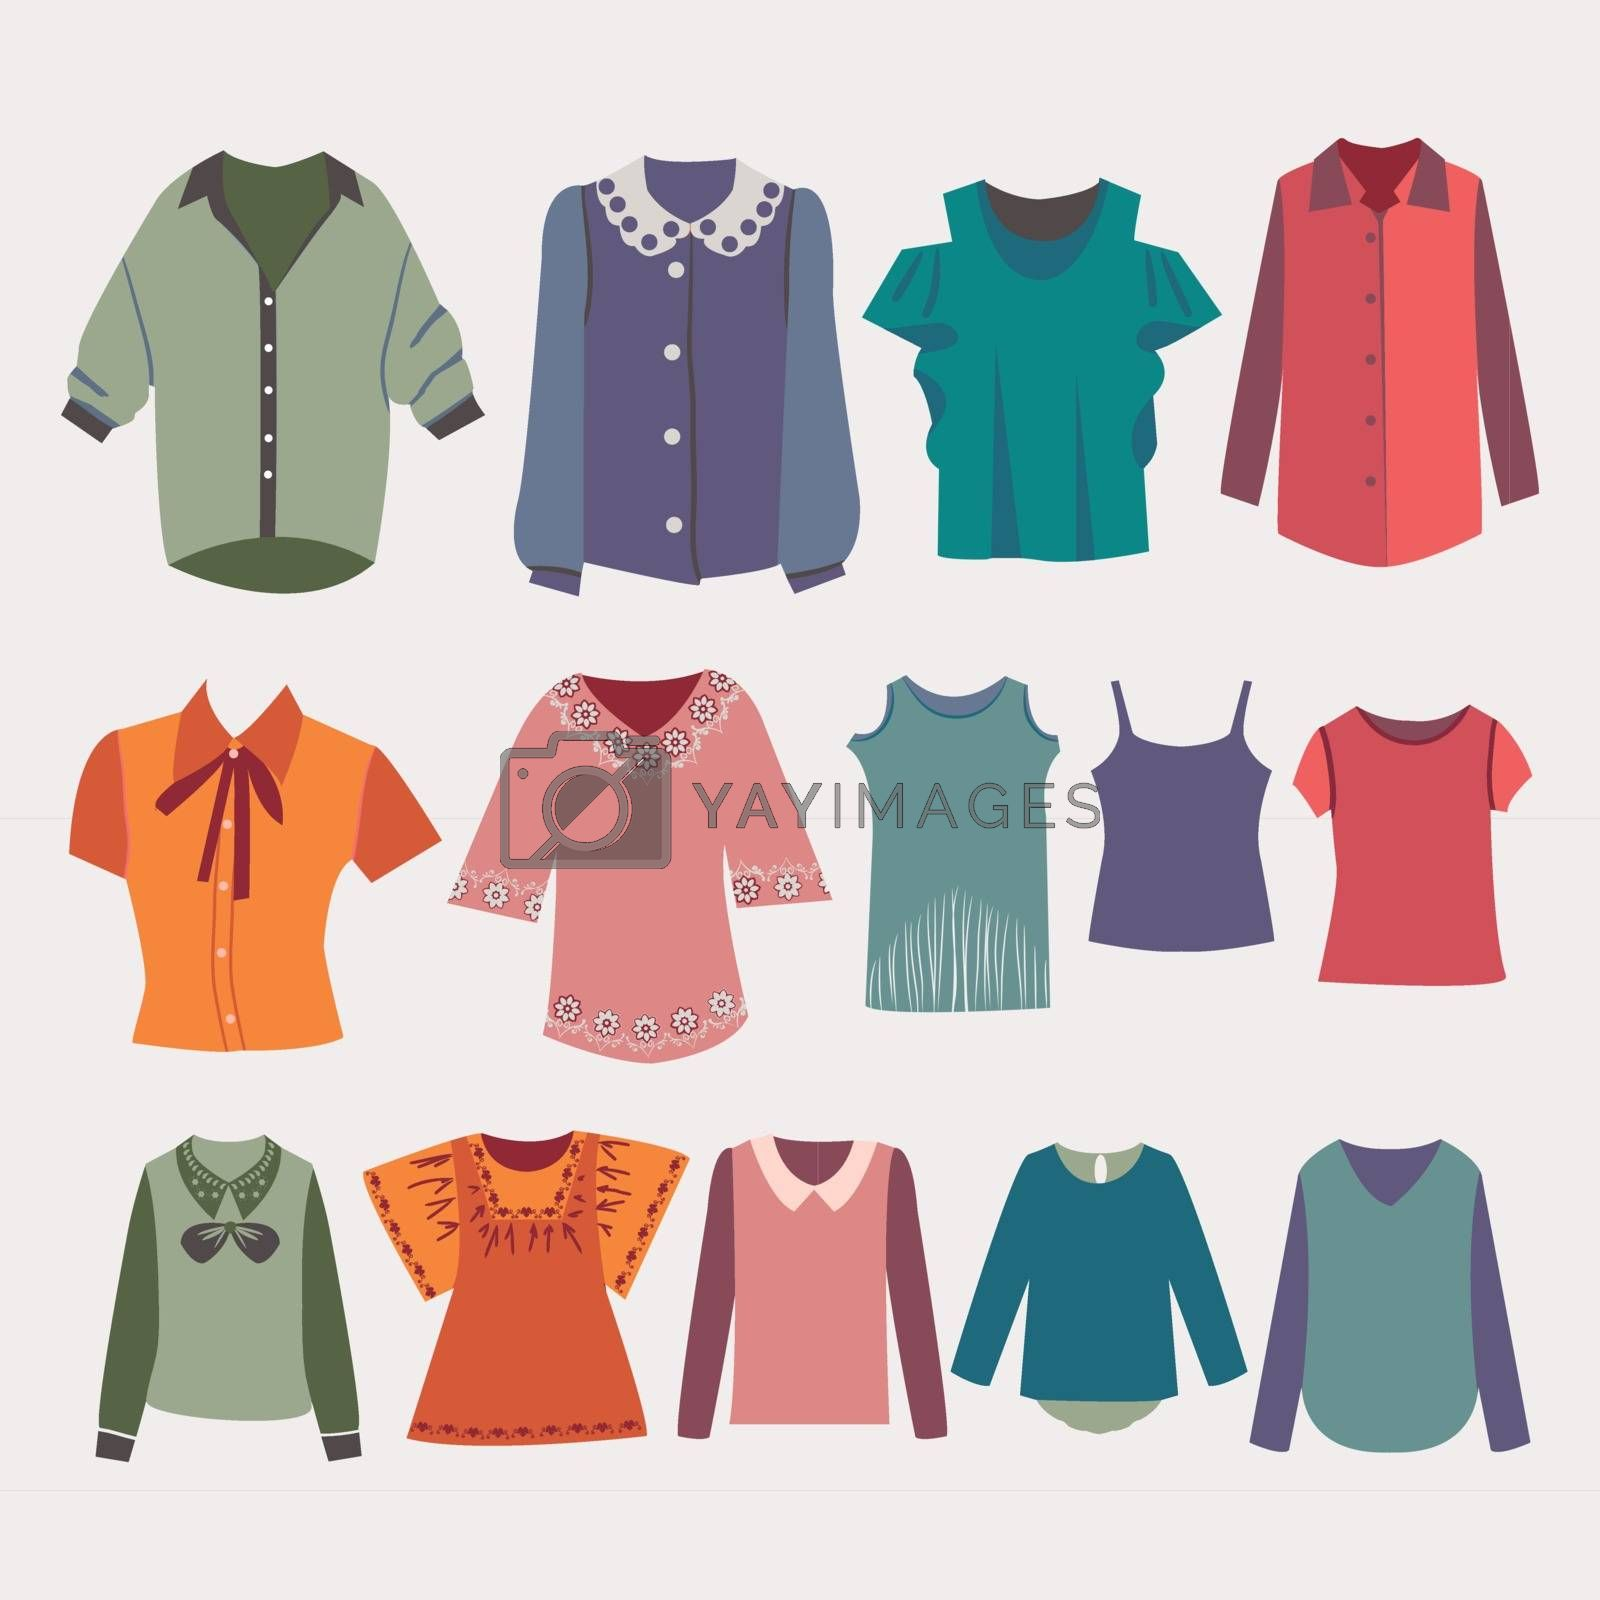 Vector fashion women's shirts and colorful female t-shirts for you design.